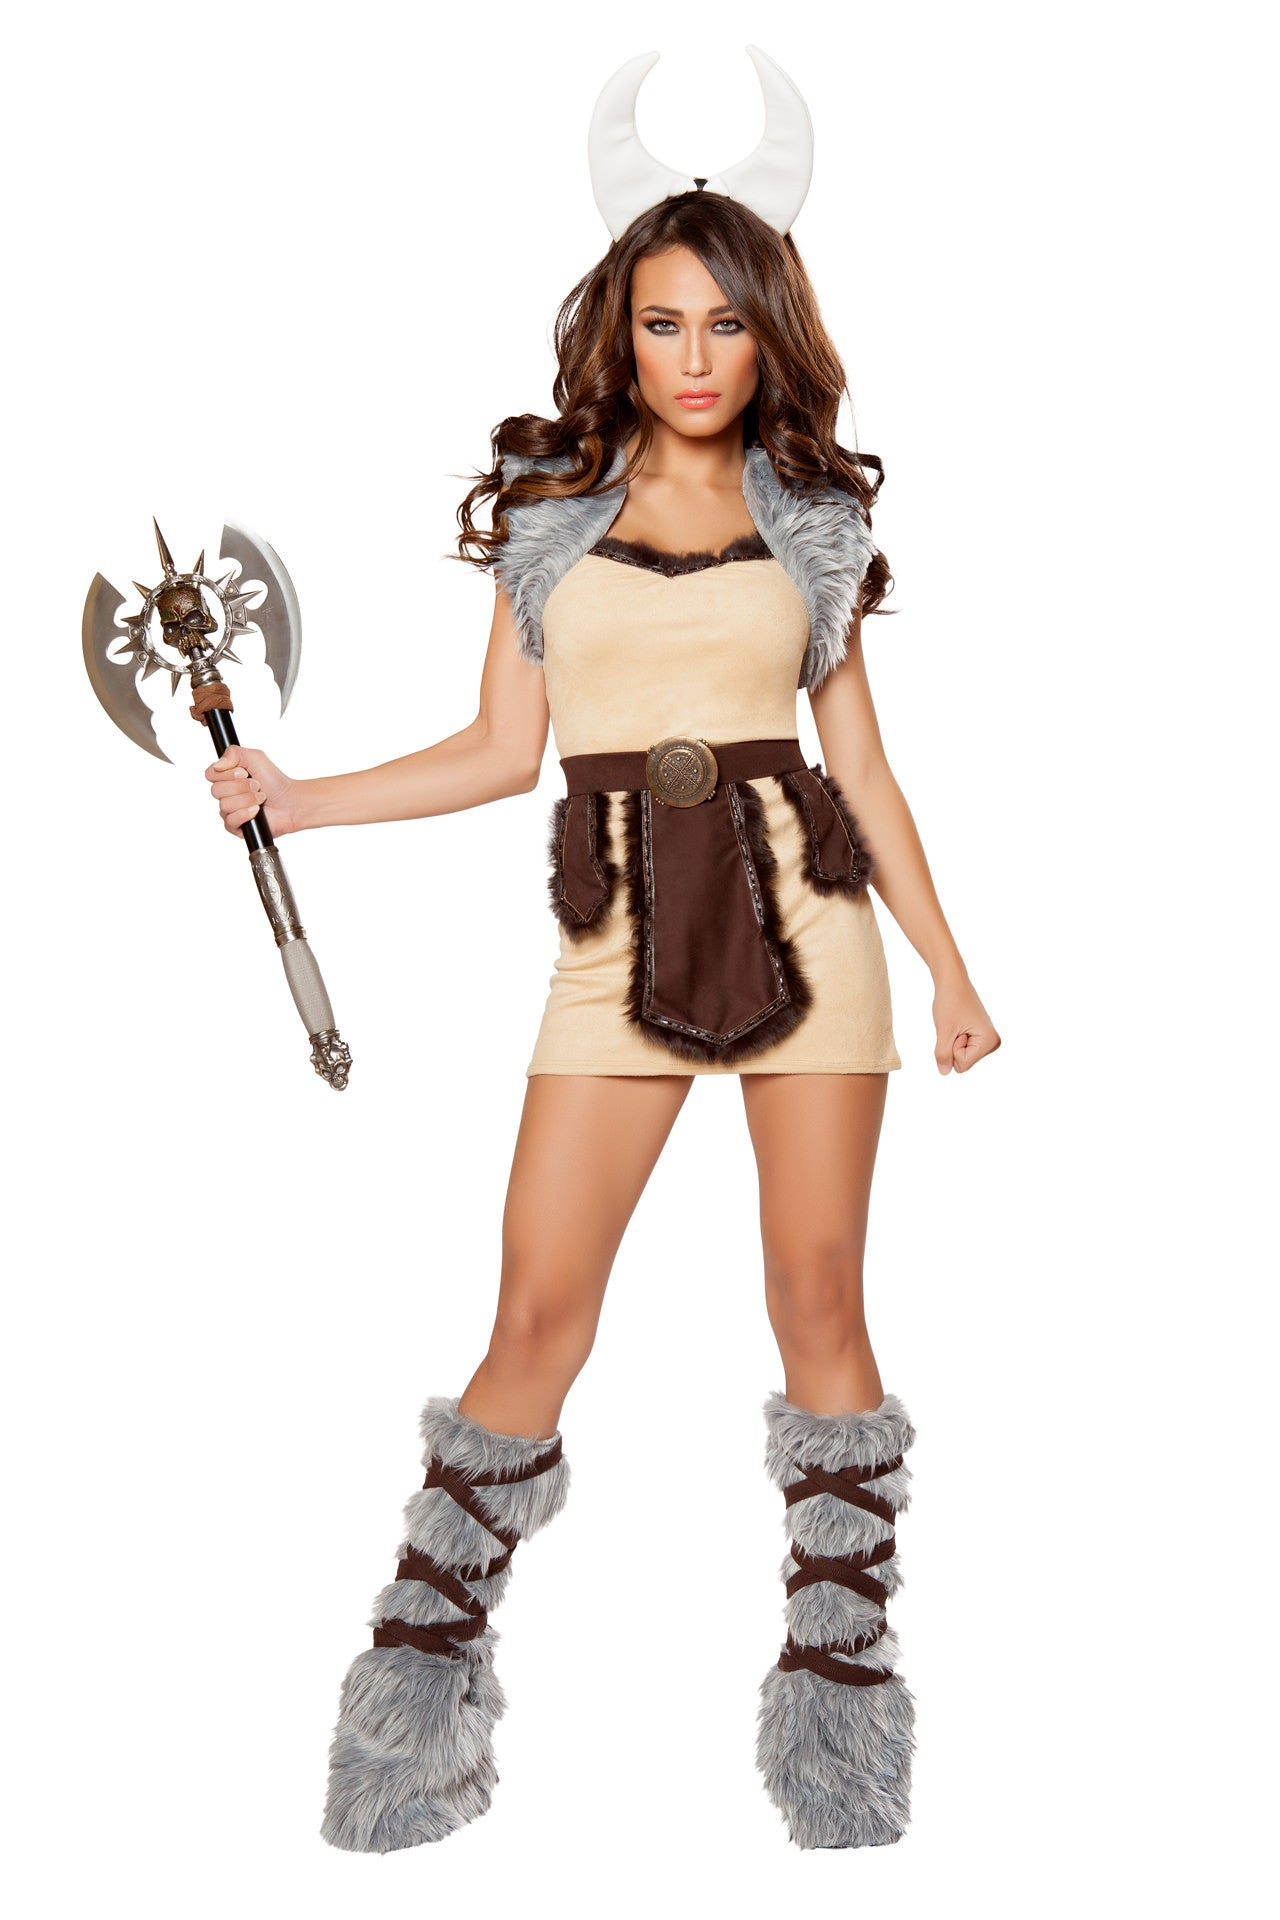 10061 - 4pc Vicious Viking ${description} | Roma Costume and Roma Confidential wholesale manufacturer of Women Apparel bulk world wide wholesale and world wide drop ship services for Adult Halloween Costumes, Sexy and Elegant Lingerie, Rave Clothing, Club wear, and Christmas Costumes. Costumes,Blowout Sale, Roma Costume, Inc., Roma Costume, Roma Confidential, Wholesale clothing, drop ship, drop ship service, Wholesale Lingerie, Wholesale Adult Halloween Costumes, Rave Clothing, EDM Clothing, Festival Wear, Christmas Costumes, Clubwear, Club wear.